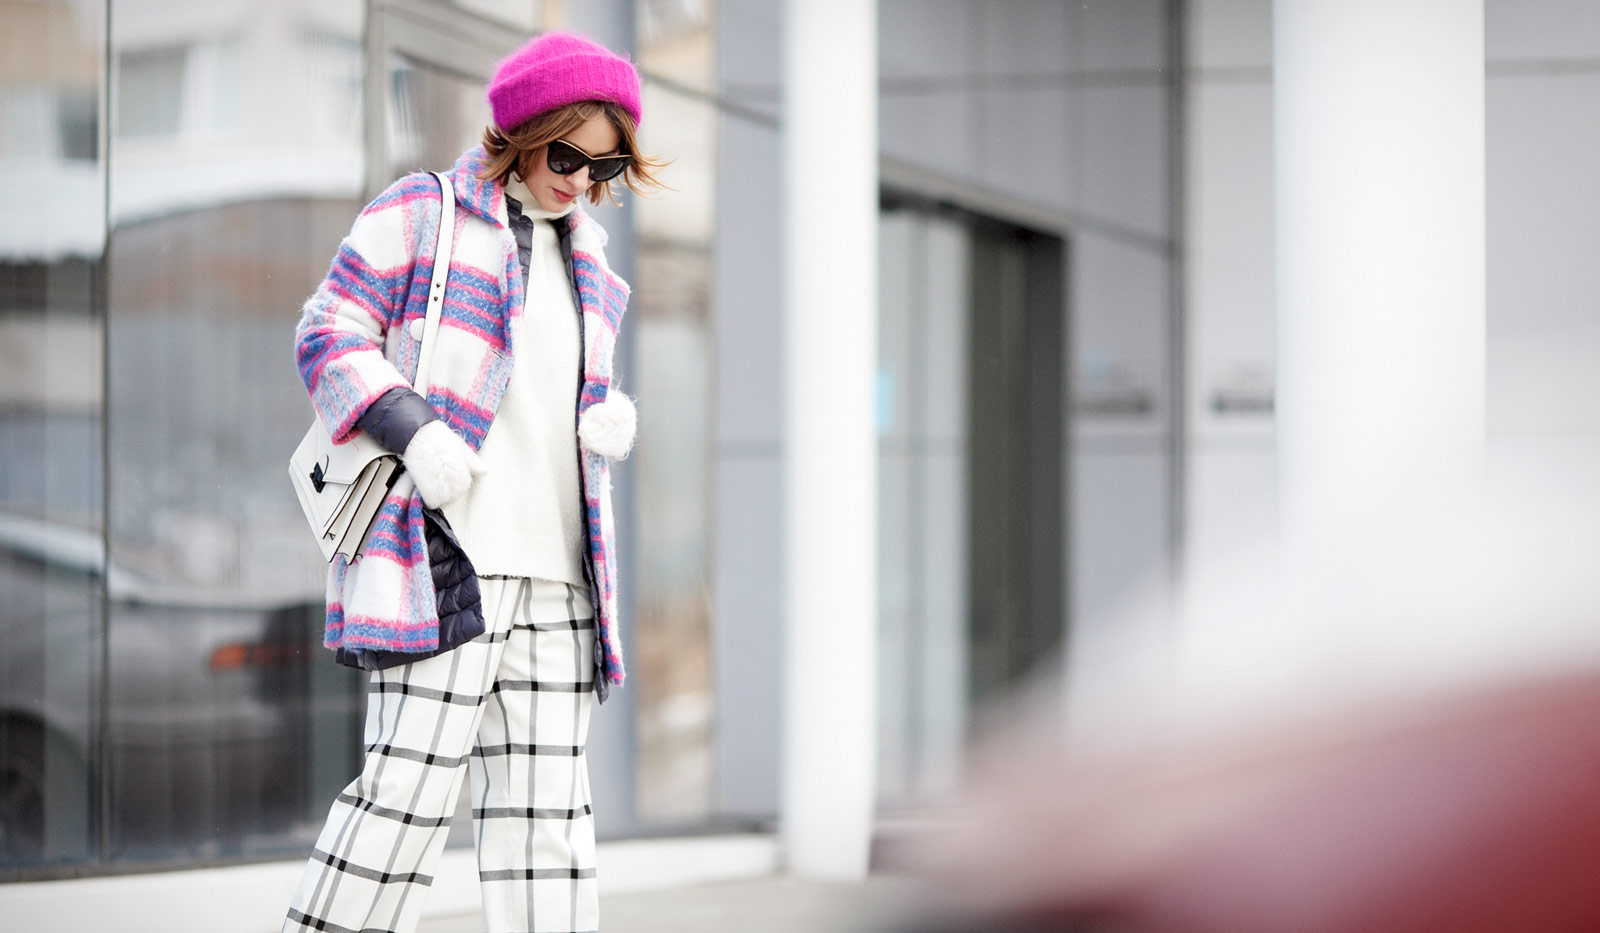 winter layers, winter layering, checkered coat, checkered coat outfit, plaid coat outfit, playful winter street styles,